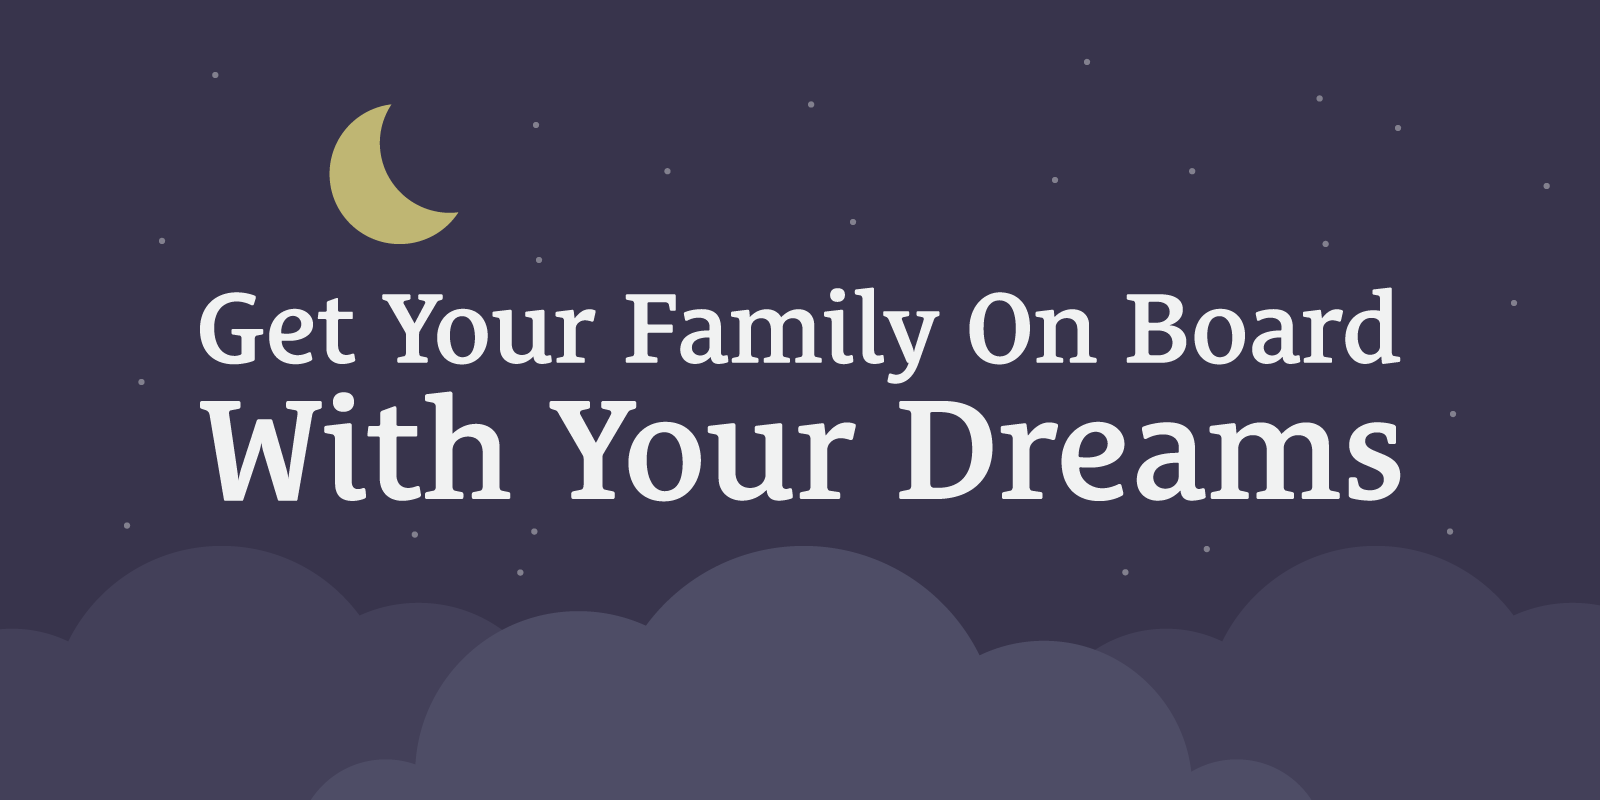 Get Your Family on Board With Your Dreams